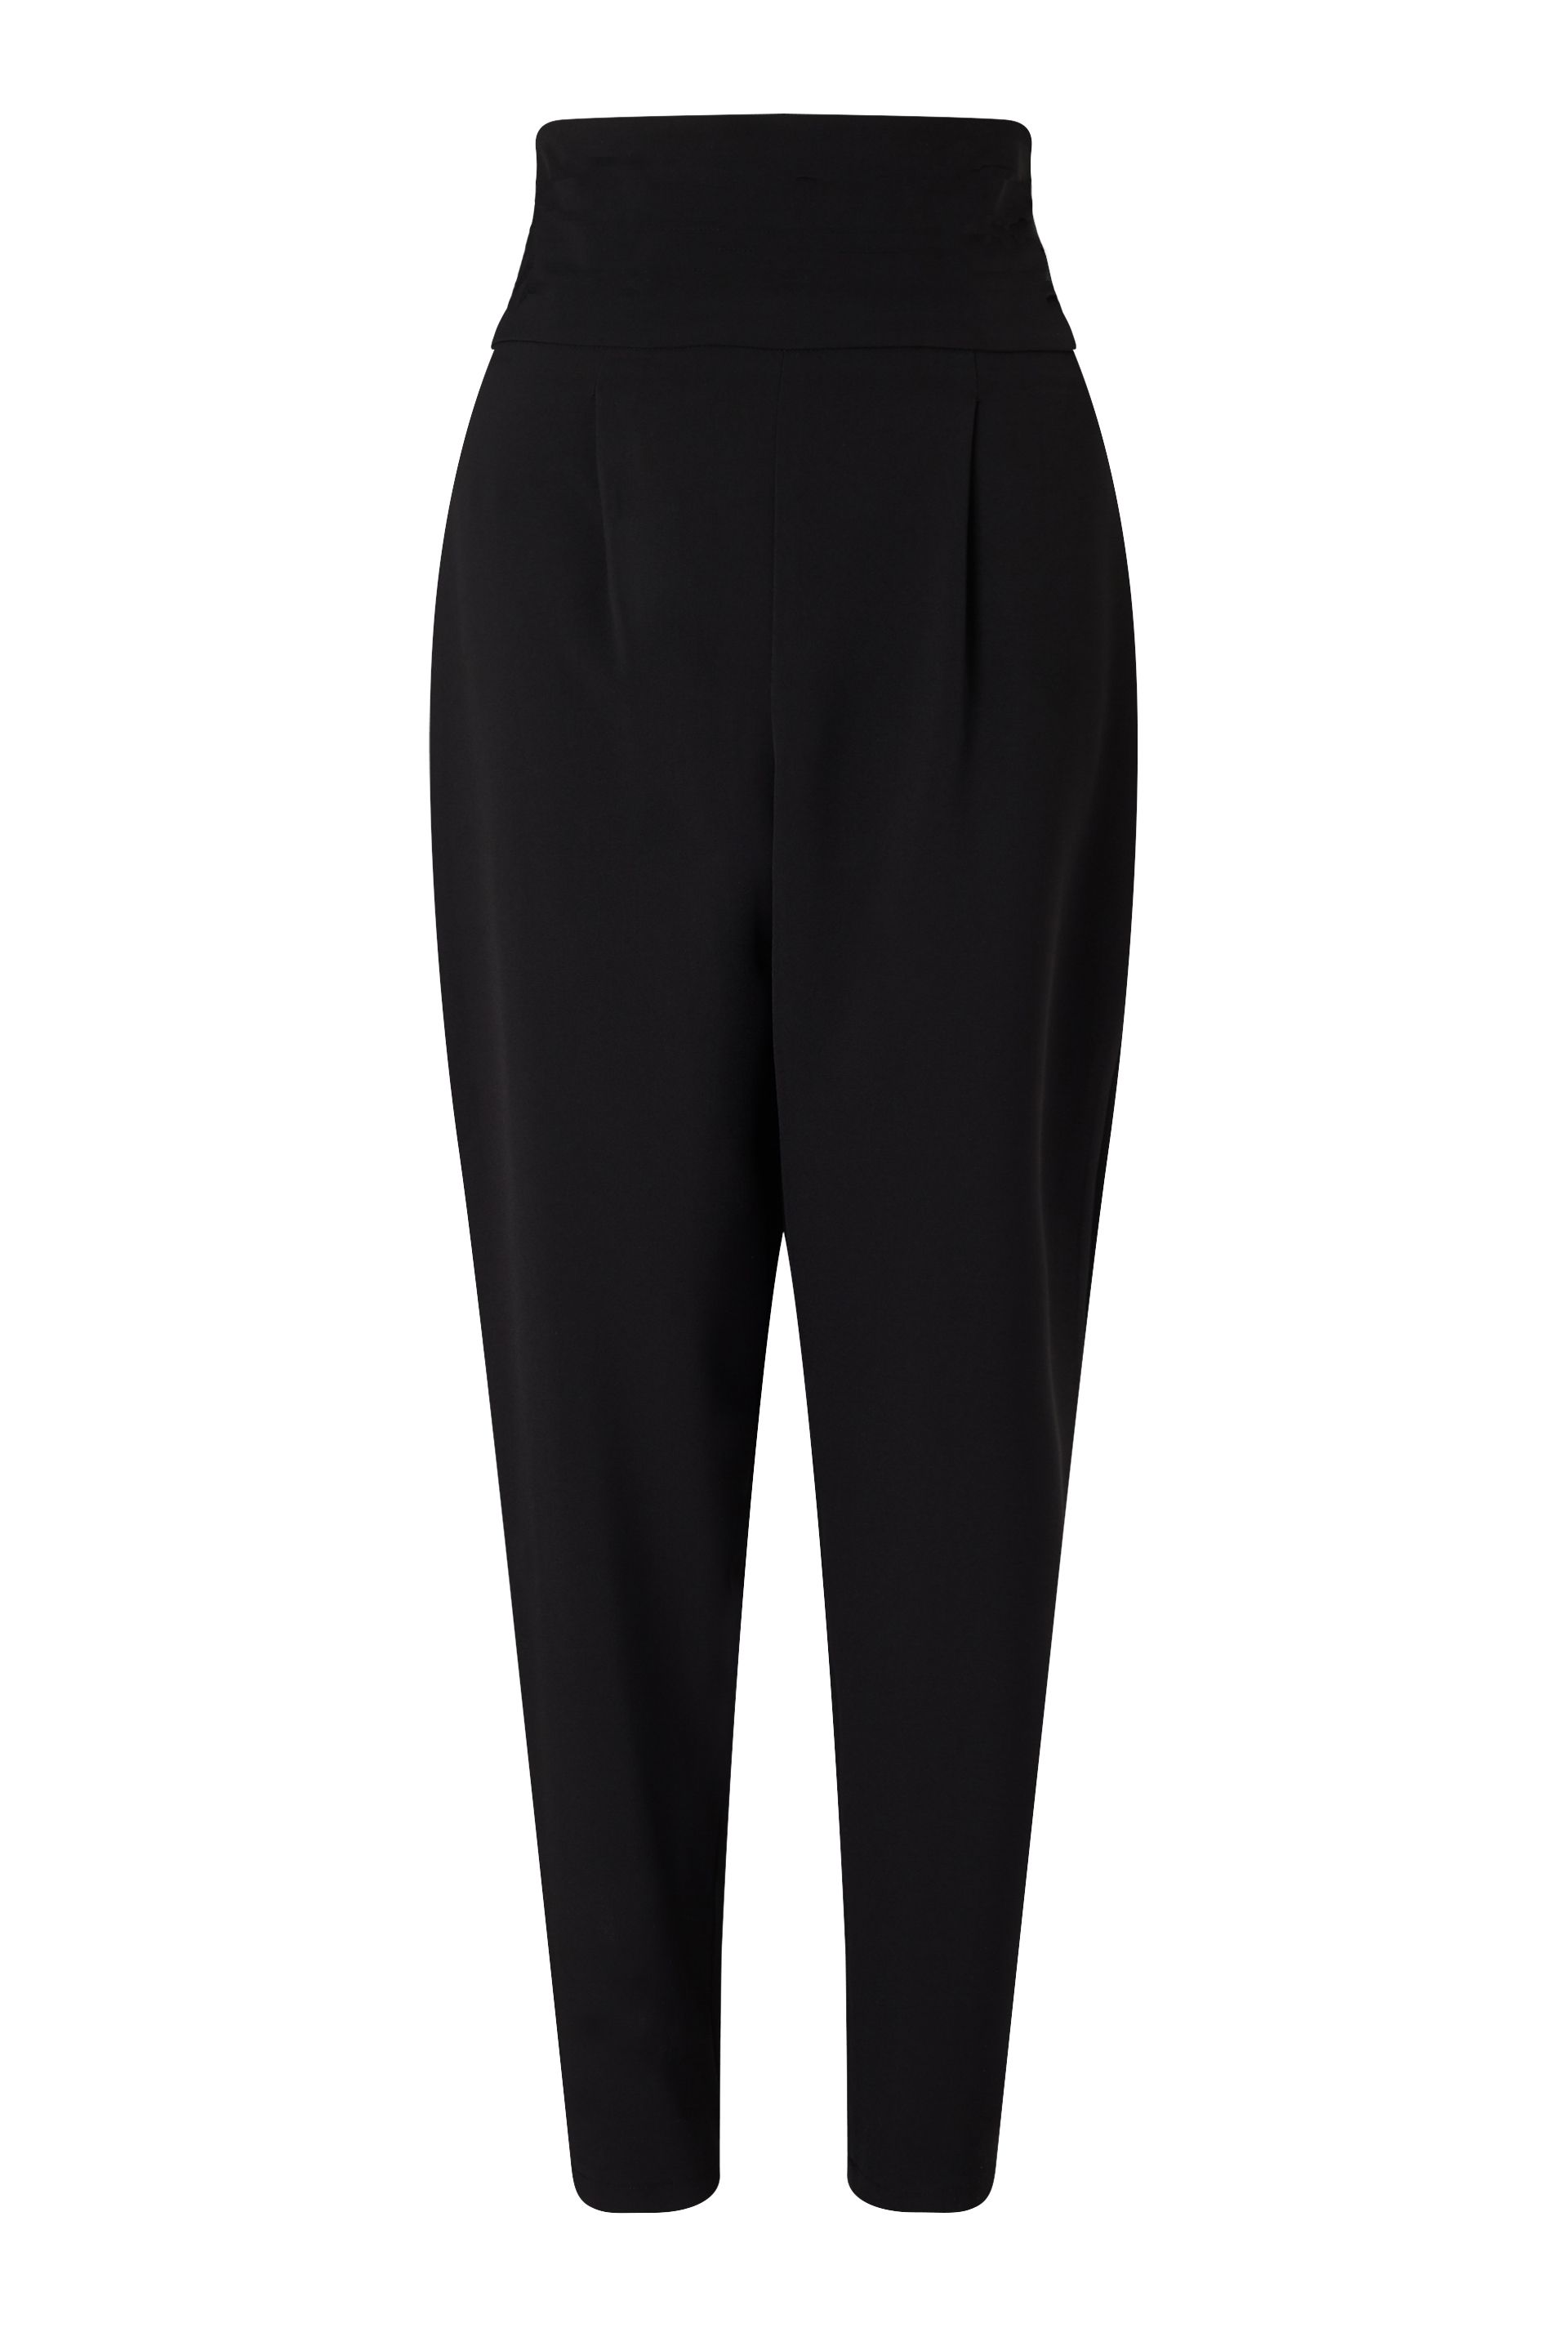 James Lakeland High Waisted Trousers, Black